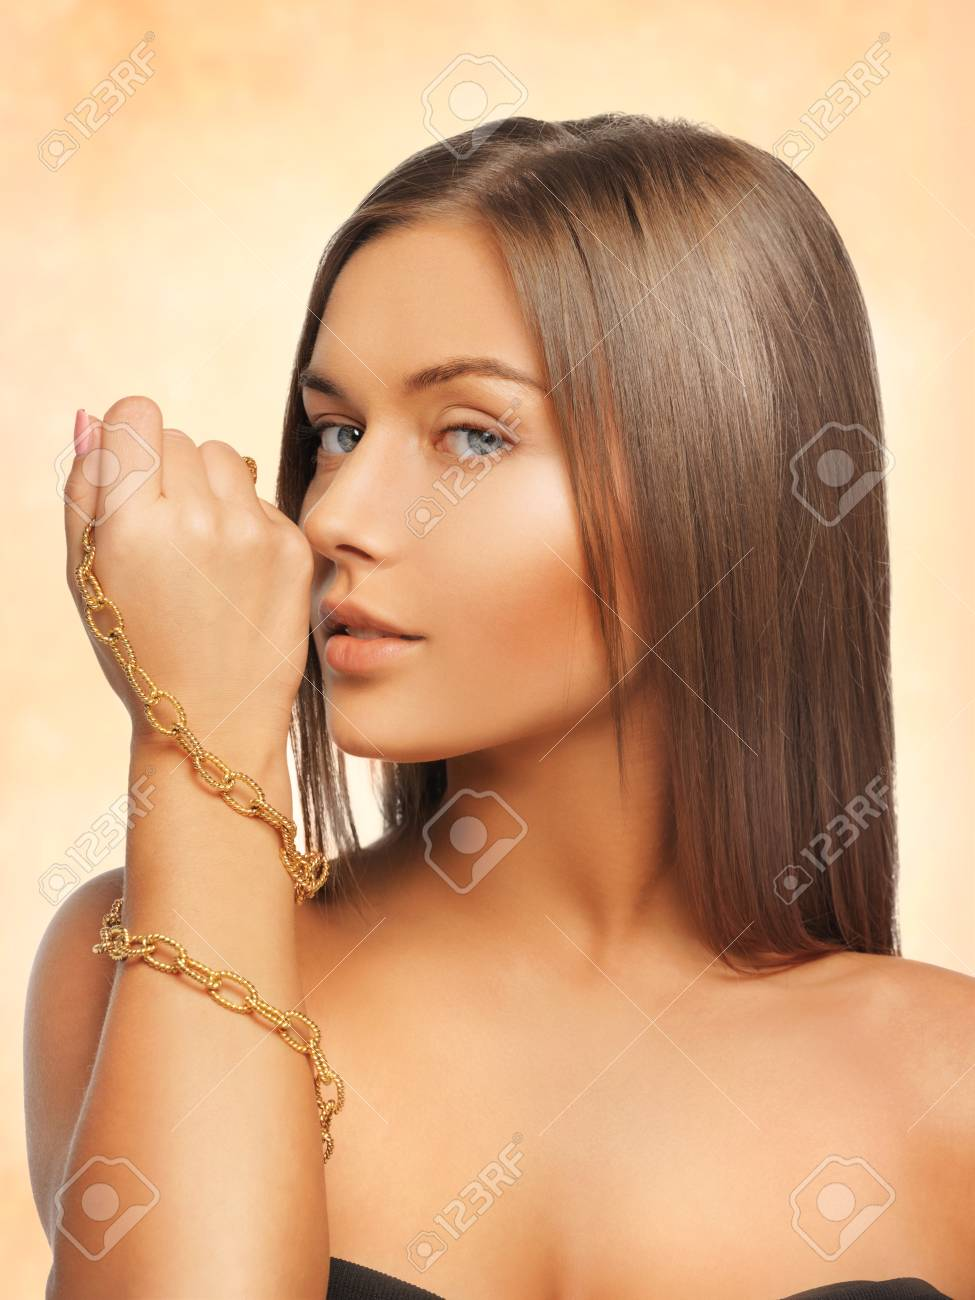 bright picture of beautiful woman with necklace Stock Photo - 17480115